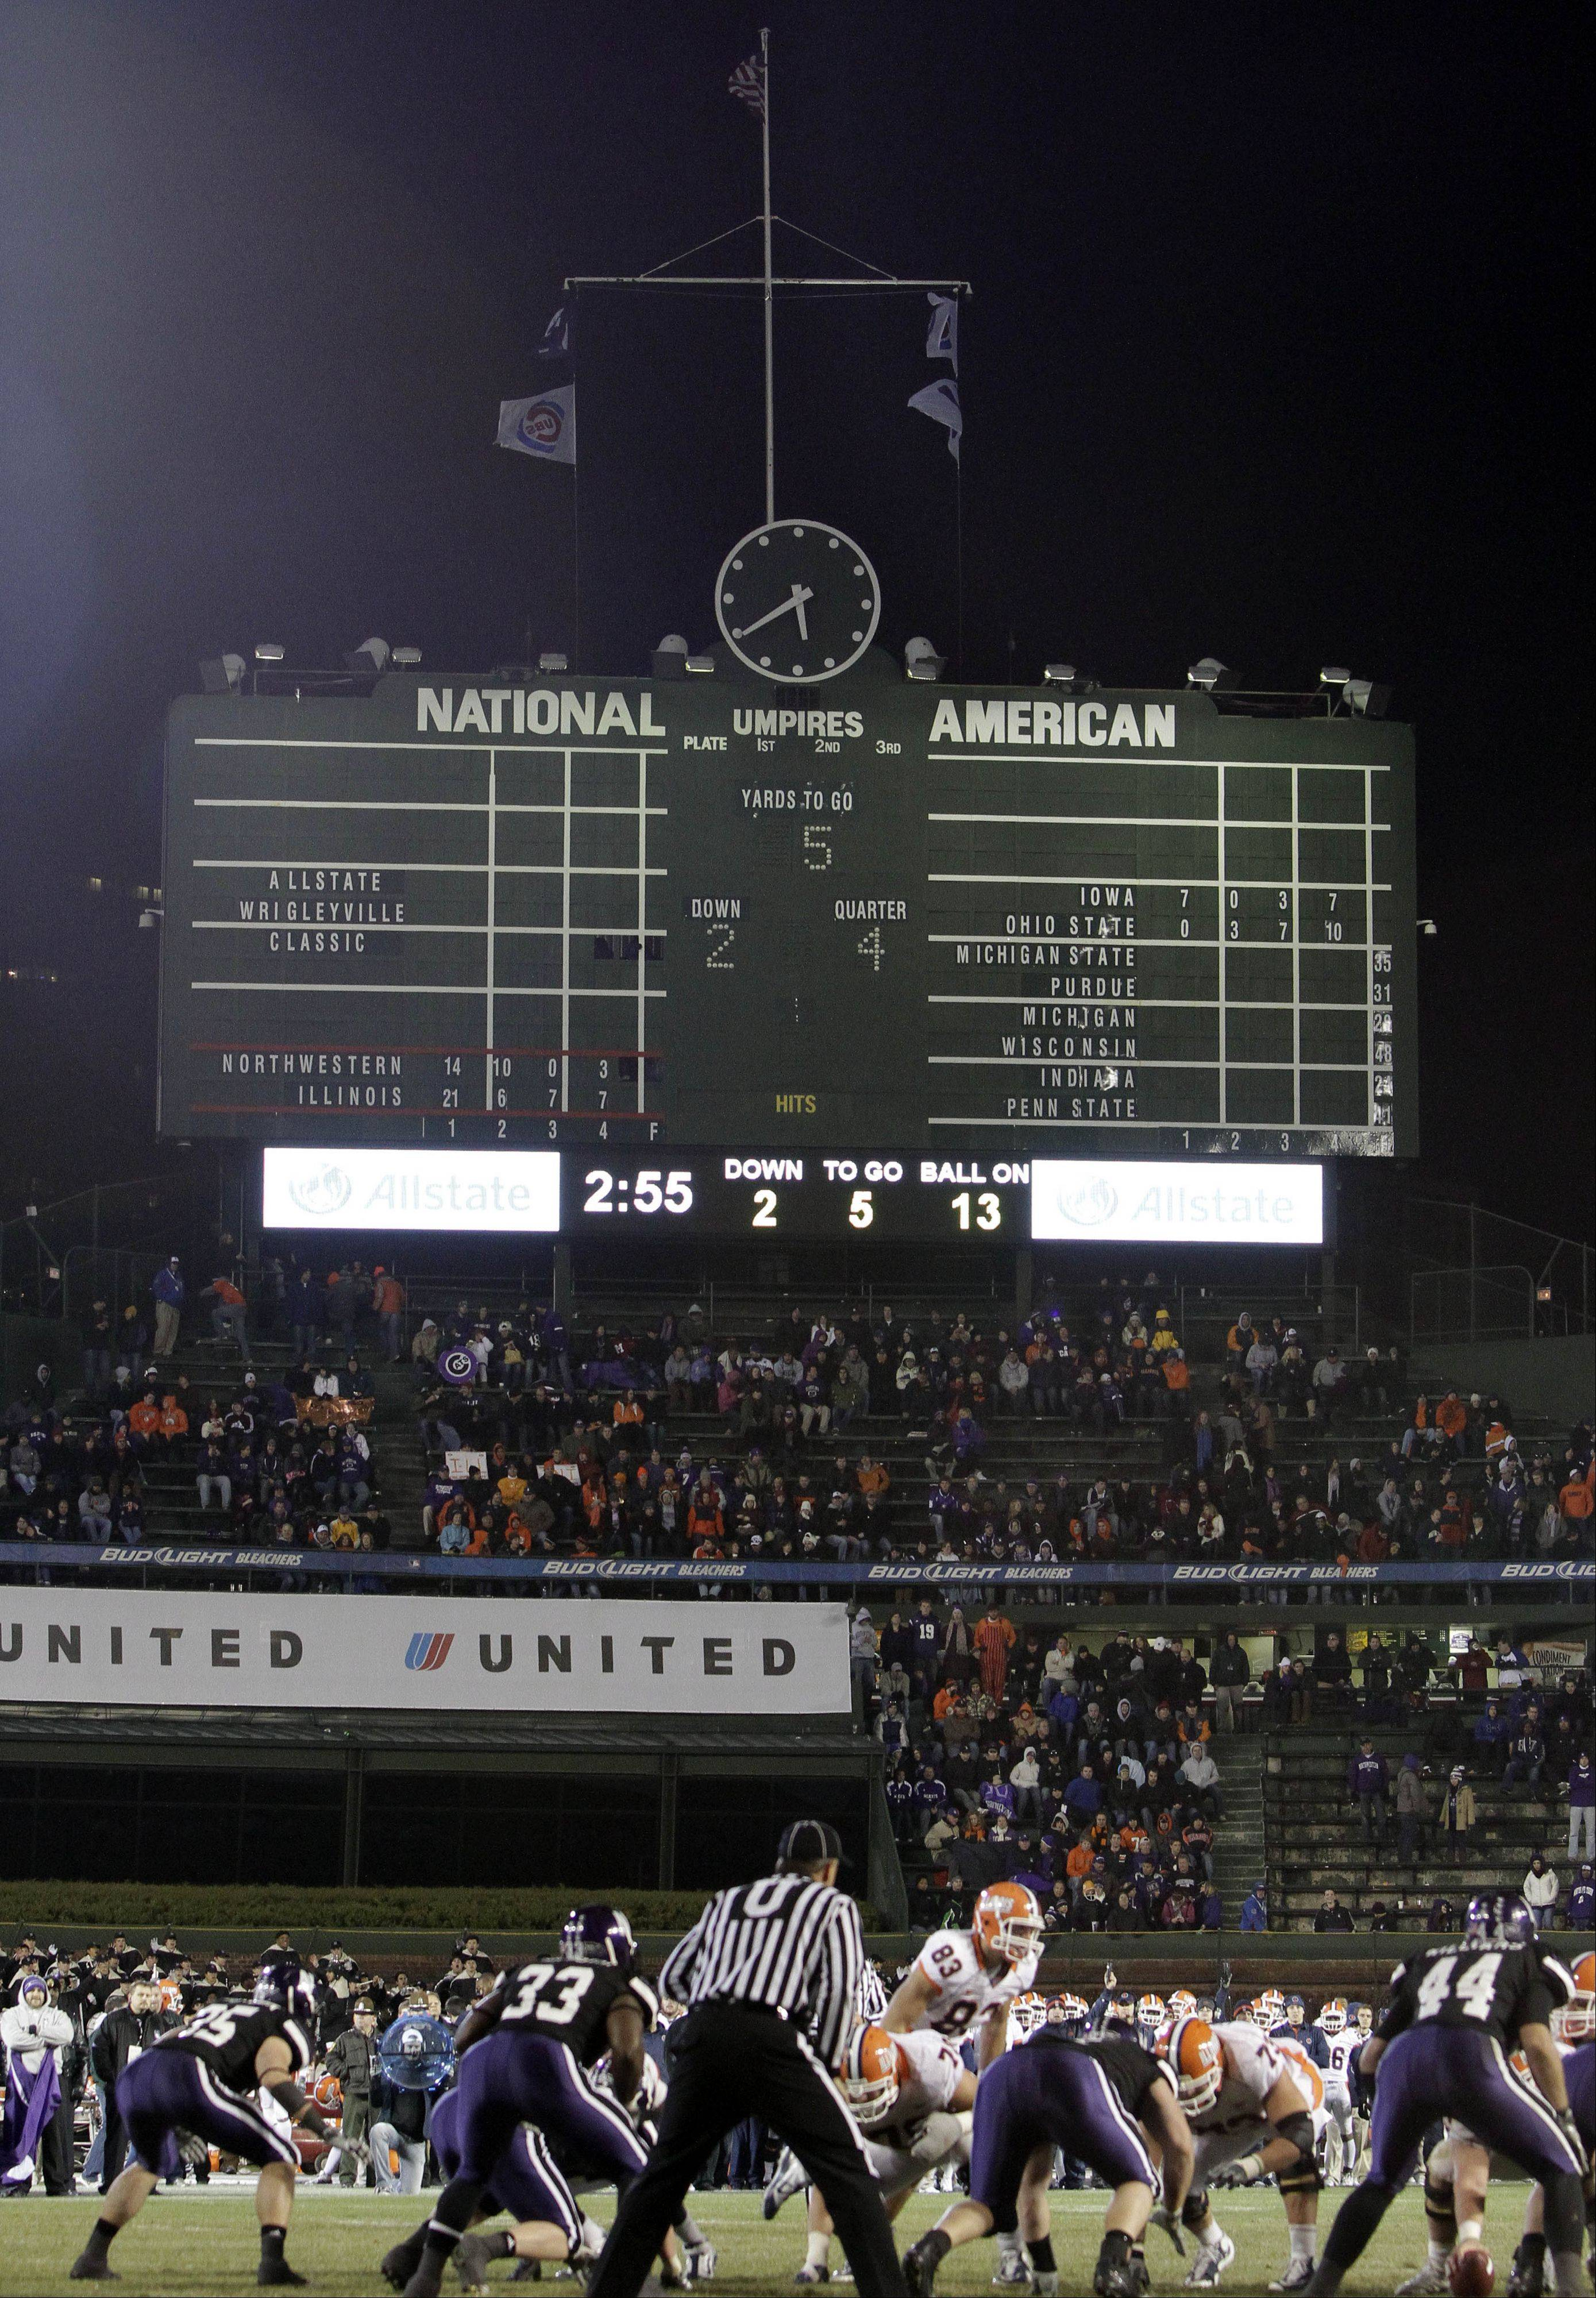 Northwestern hosted Illinois on Nov. 20, 2010 for a Big Ten football game at Wrigley Field. The Wildcats have a deal with the Cubs to play five more games at the historic ballpark, as well as baseball and lacrosse contests.